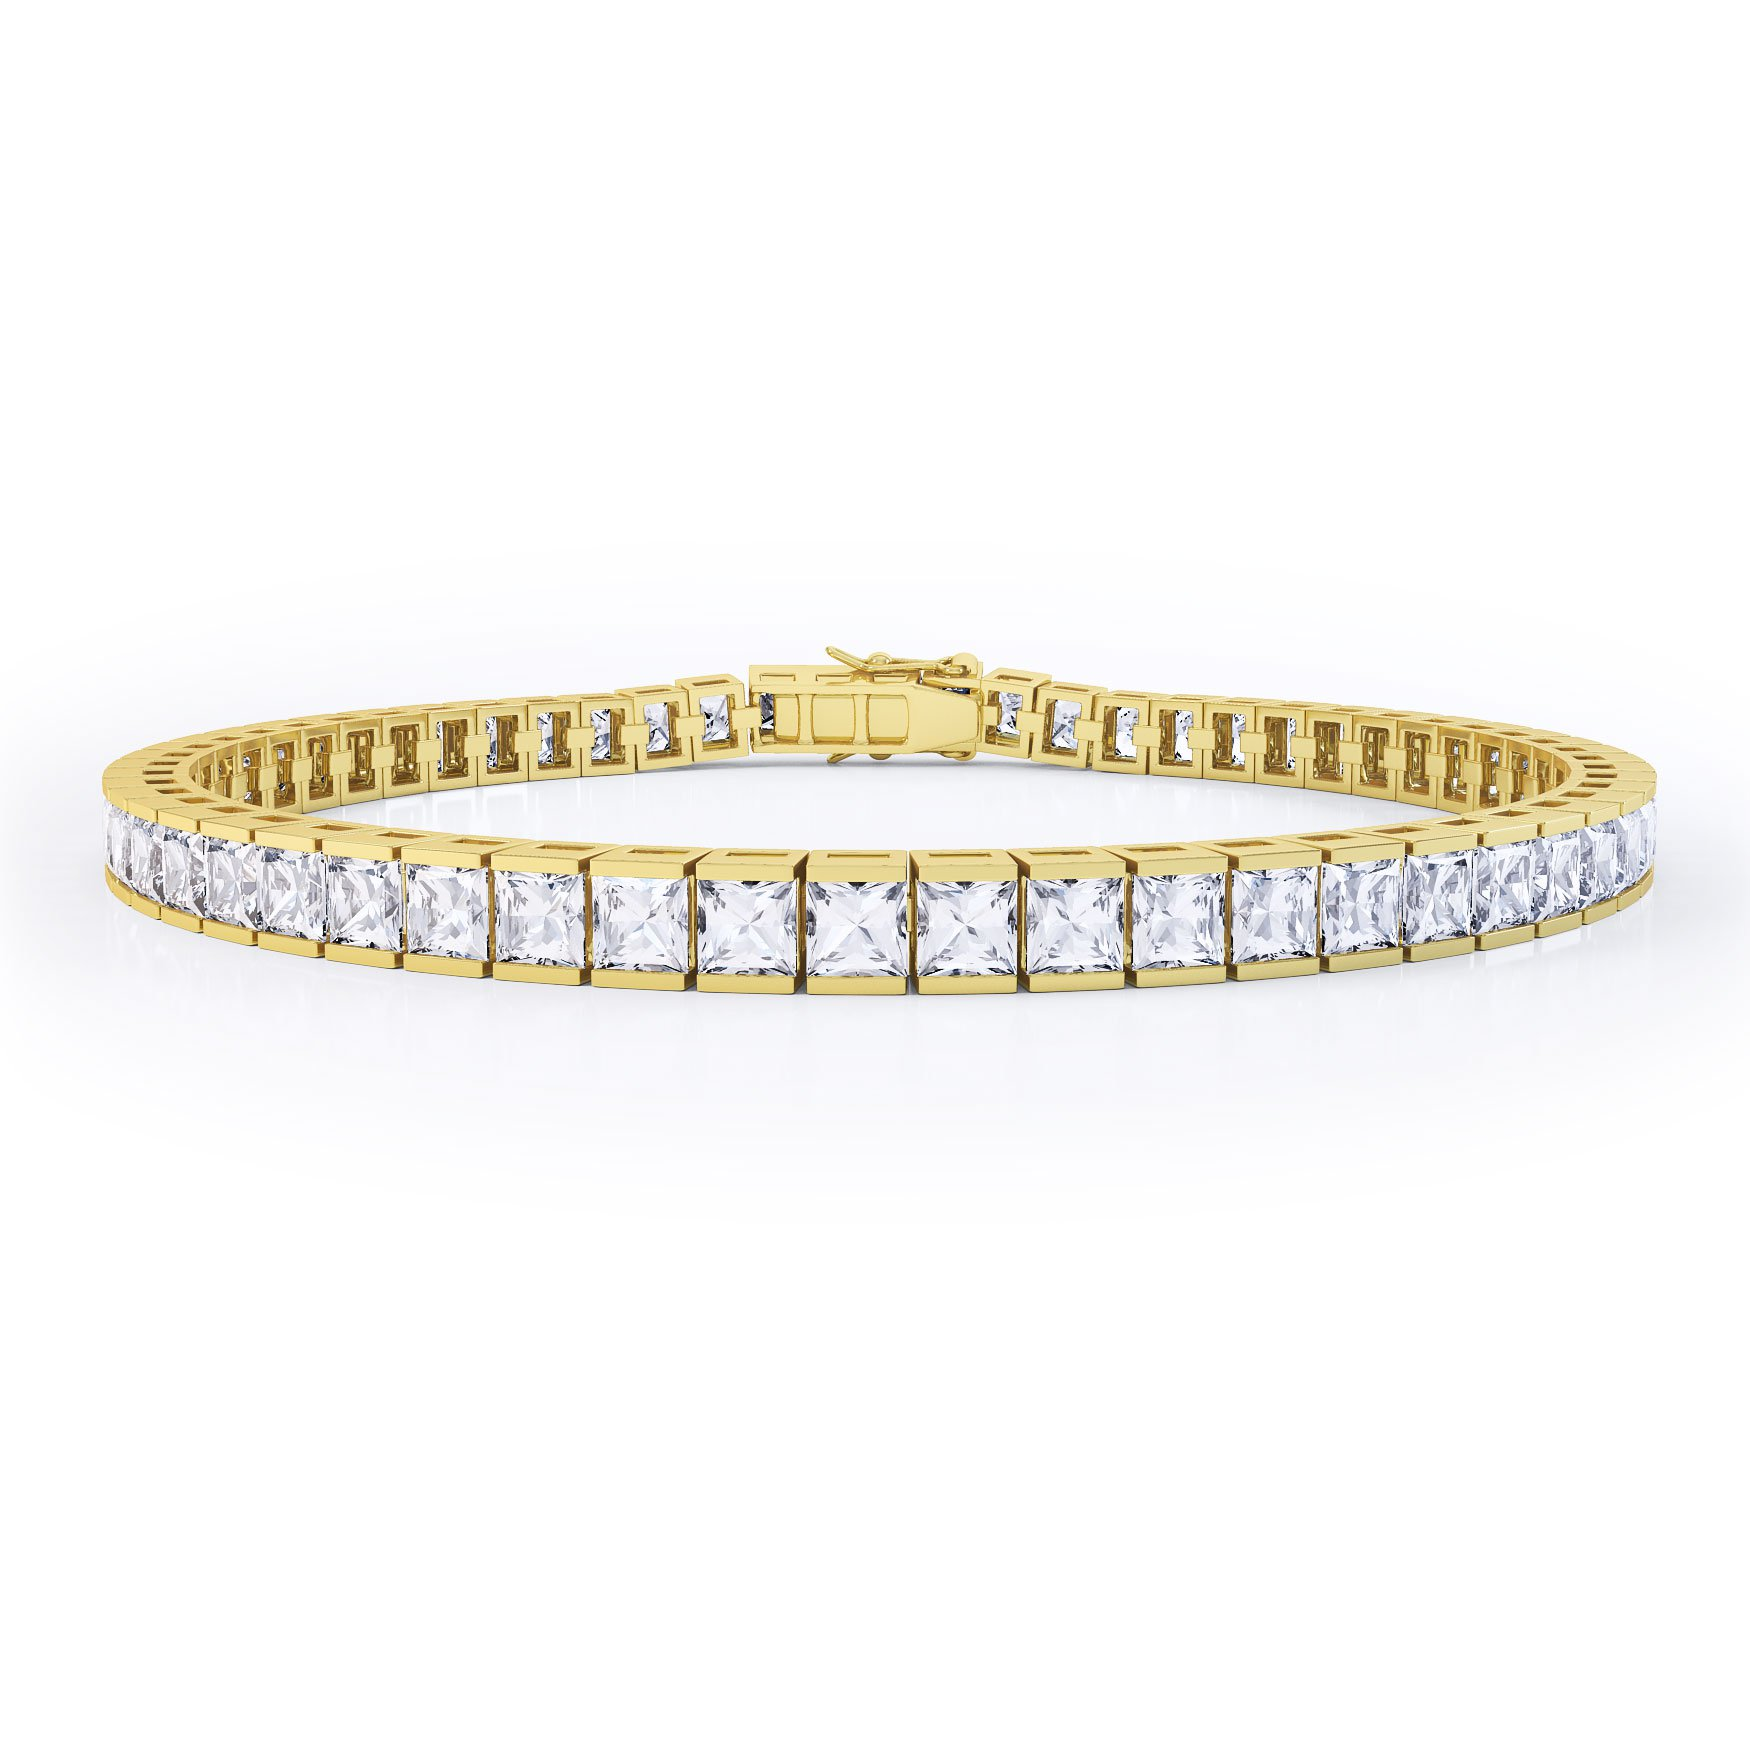 Princess CZ Diamond 18ct Gold plated Silver Tennis Bracelet Jian ... 633e86309